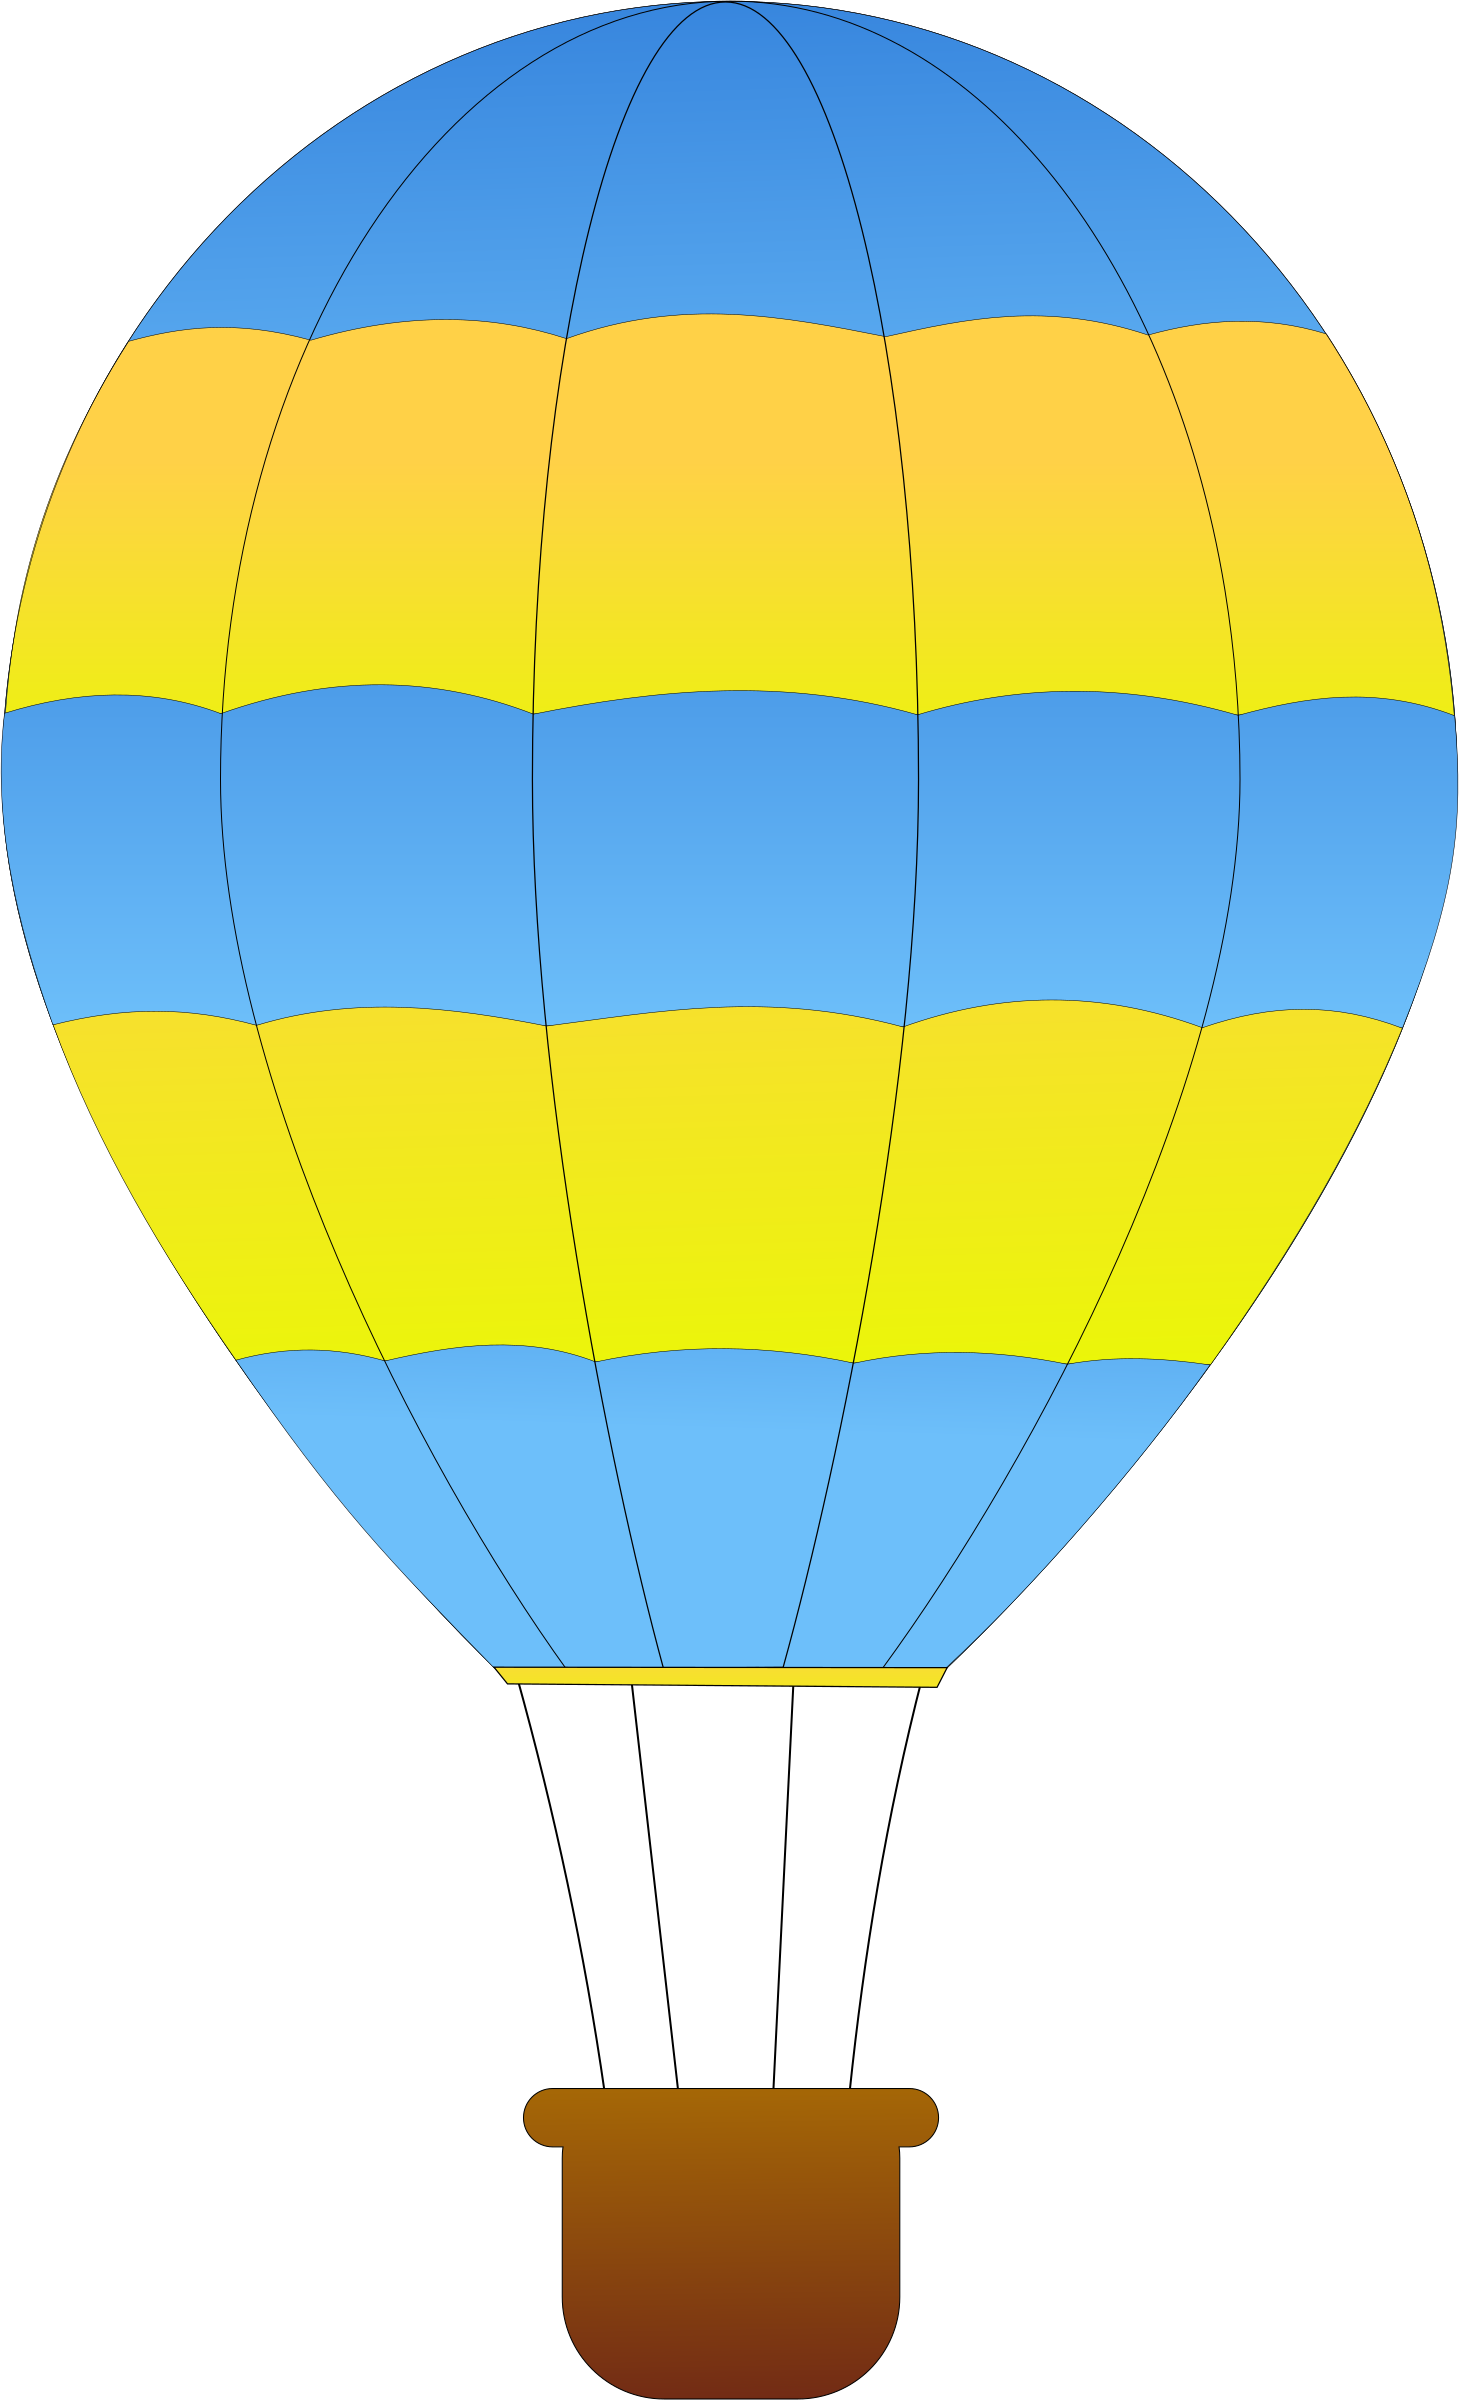 Clipart balloon vintage. Horizontal striped hot air